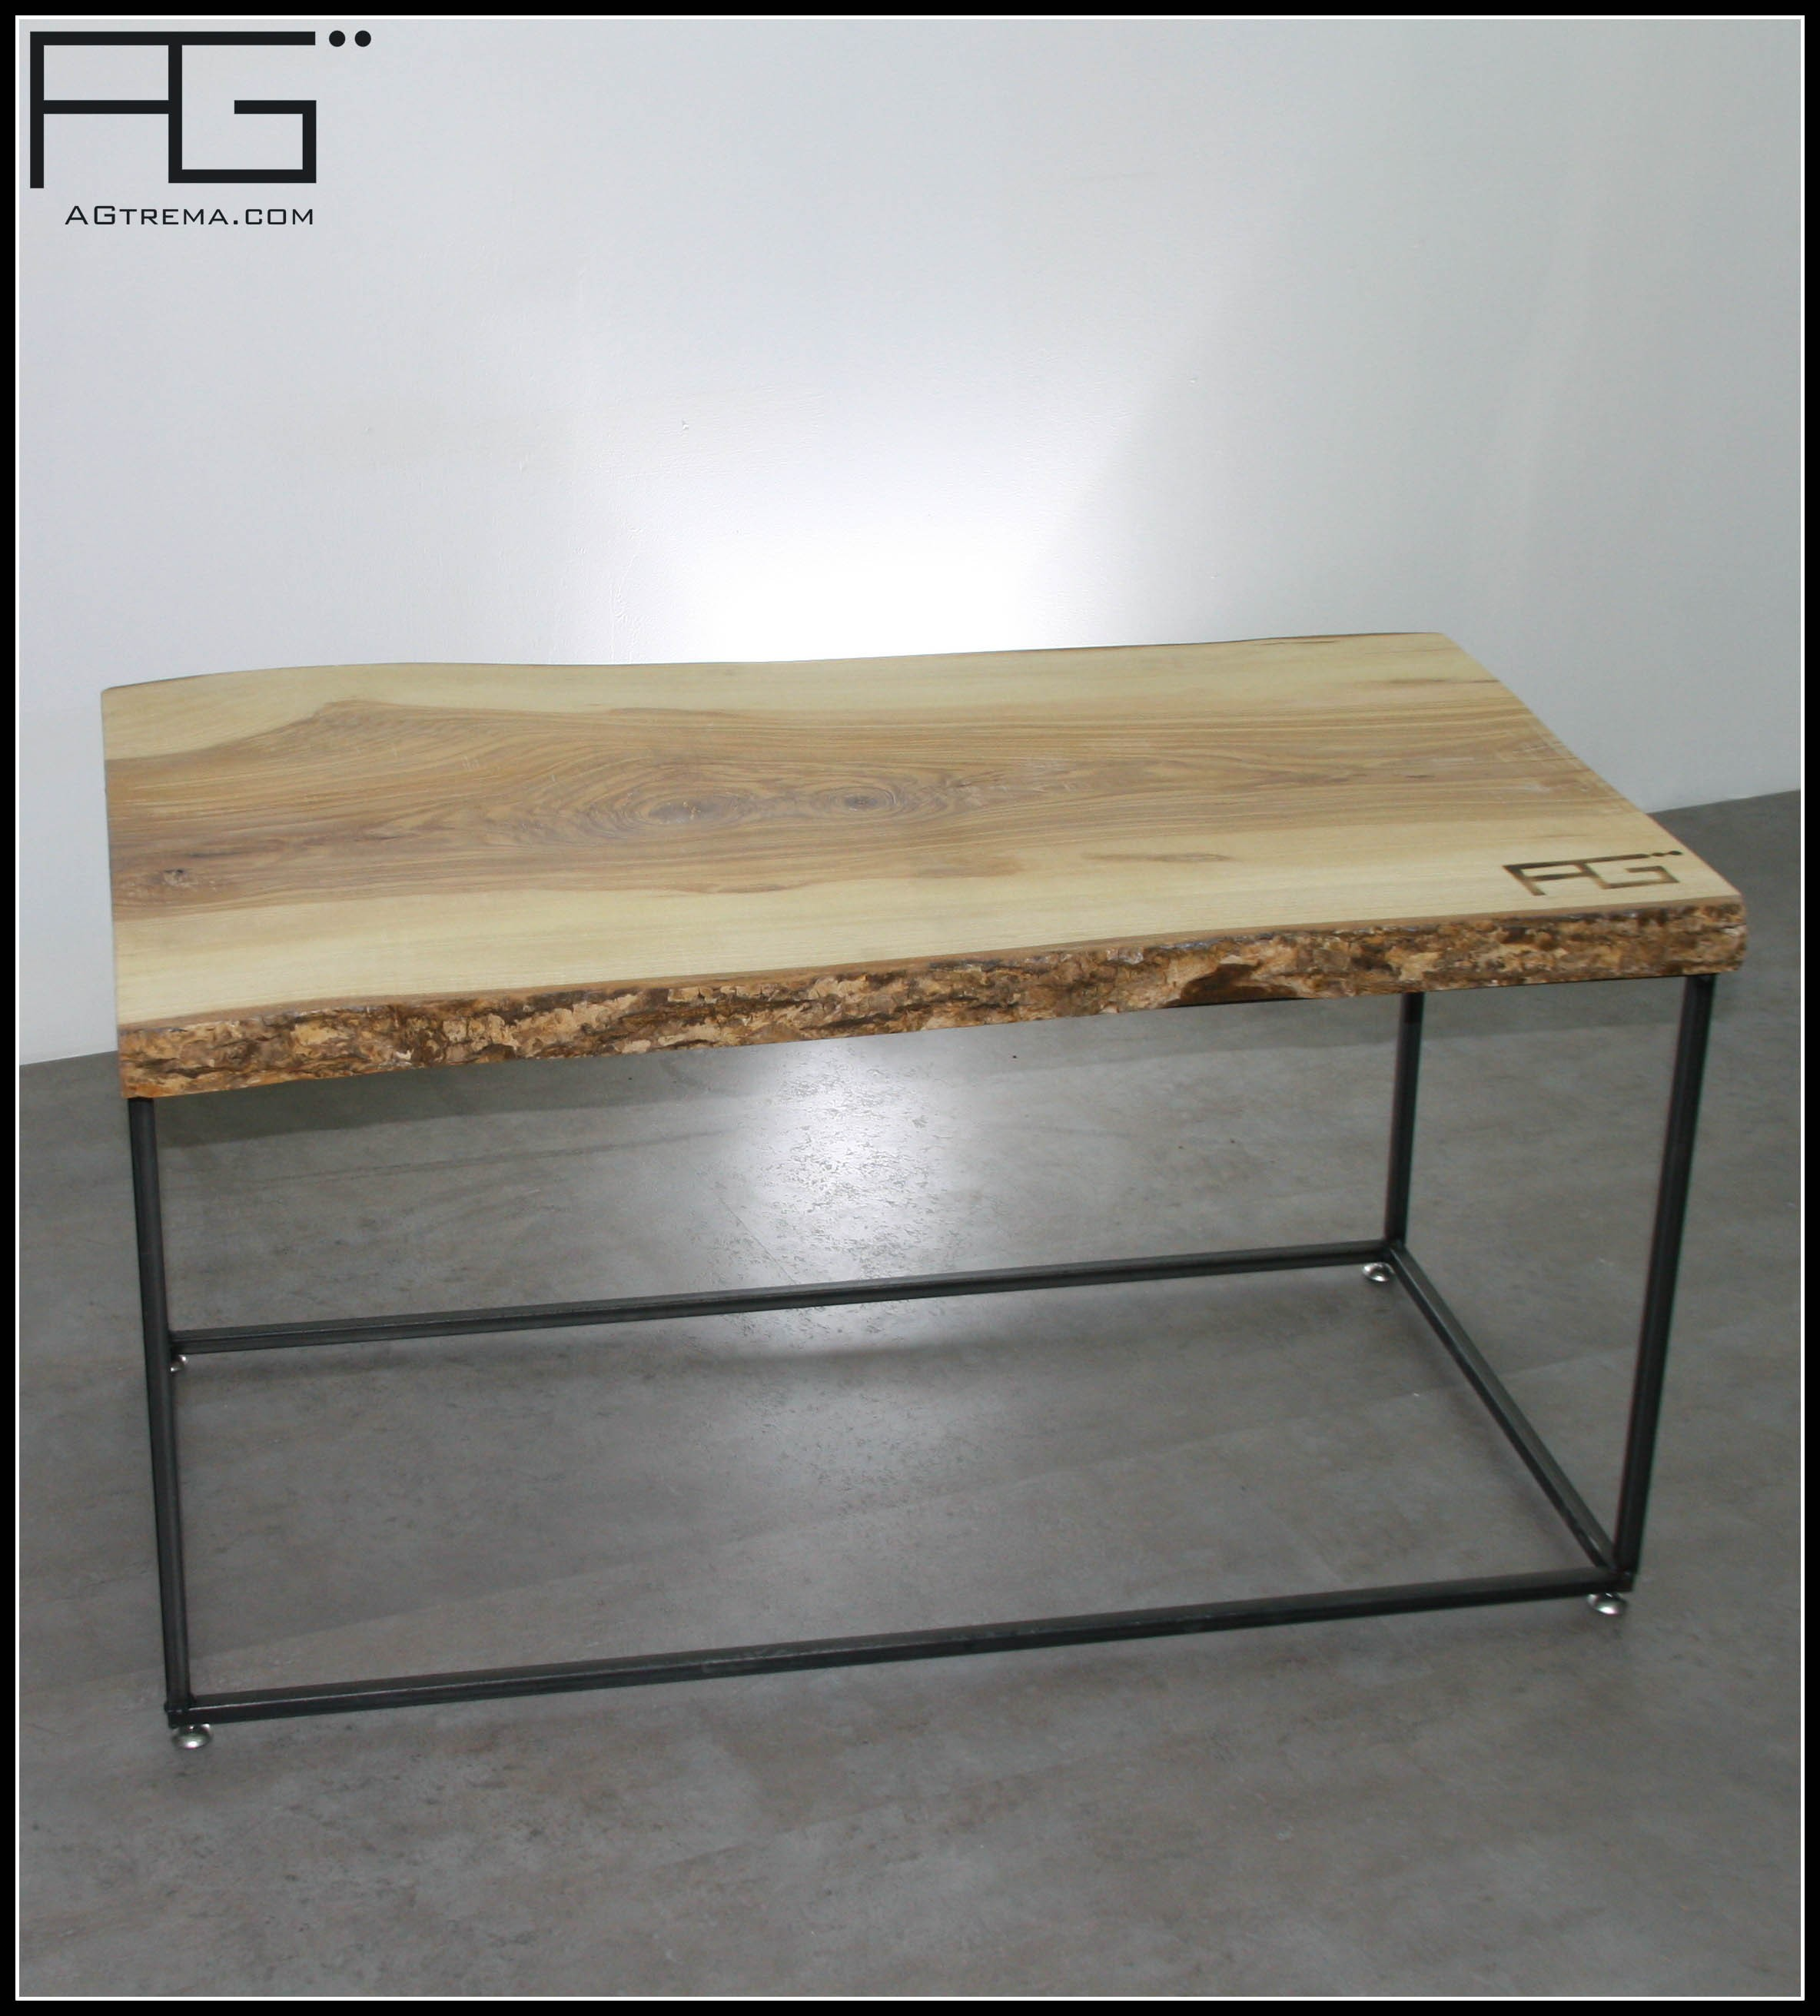 table-basse-industrielle-bords-brut-live-edge Impressionnant De Table ascenseur